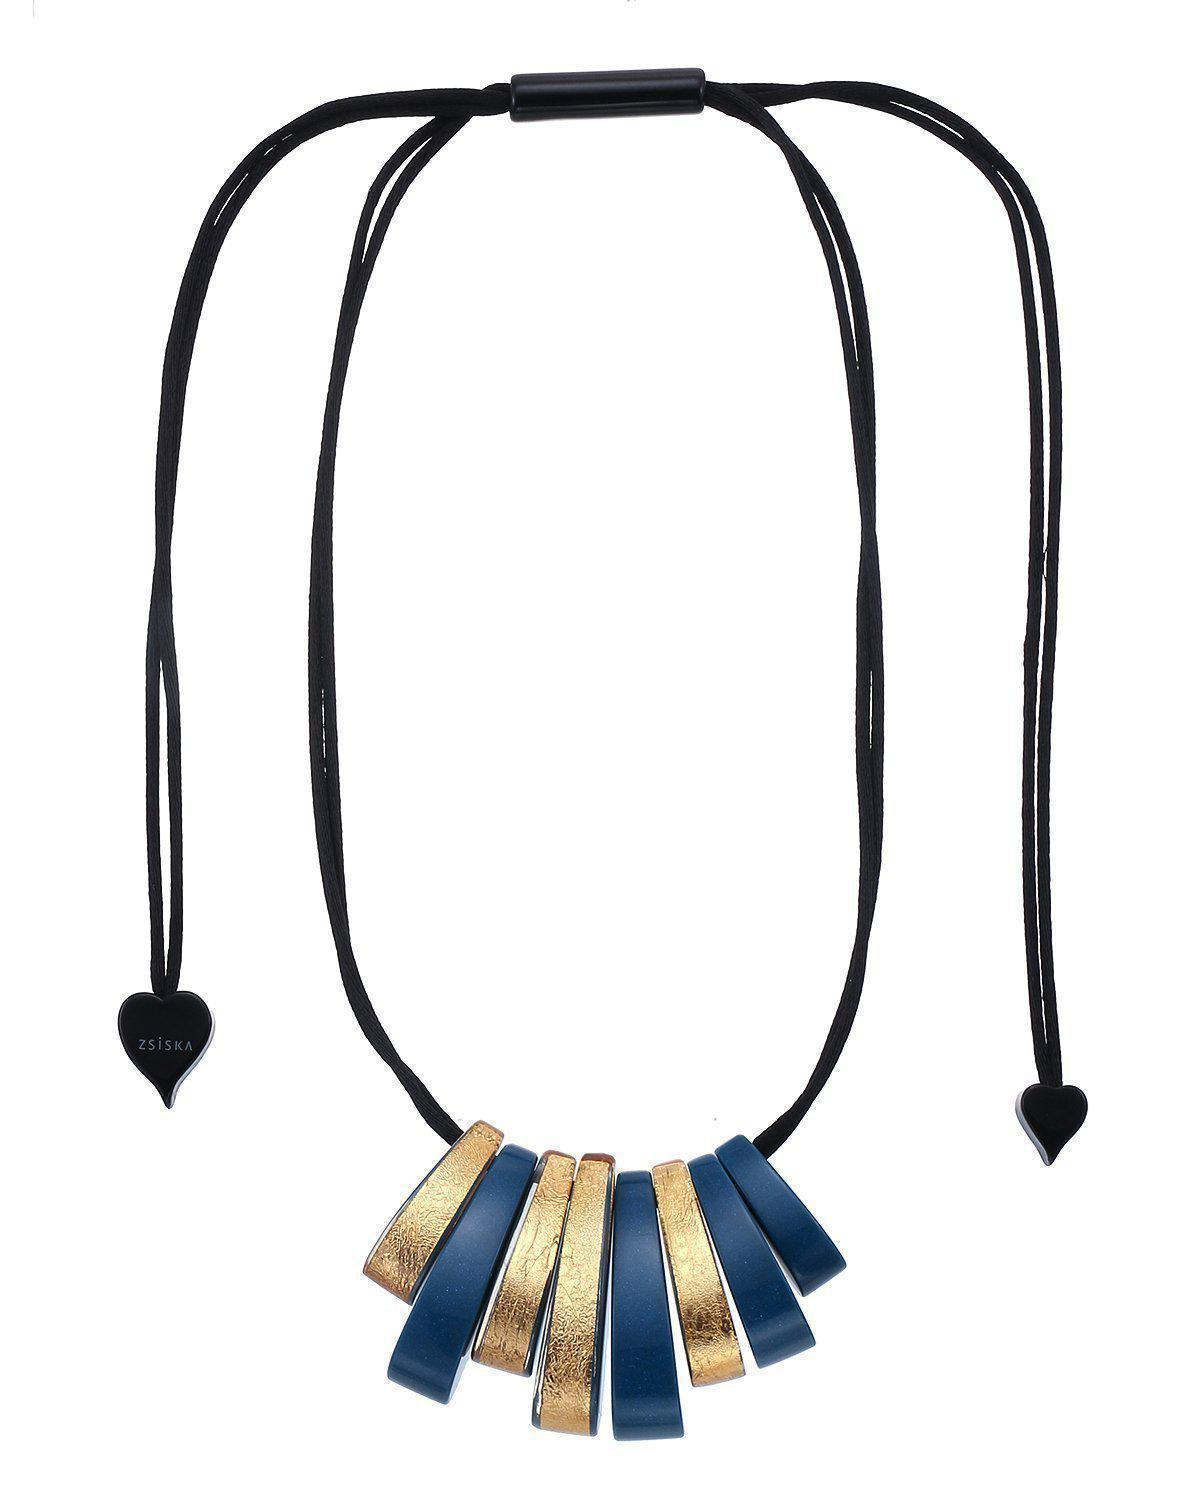 Zsiska Vogue Teal Blue and Gold Necklace-Zsiska-Temples and Markets